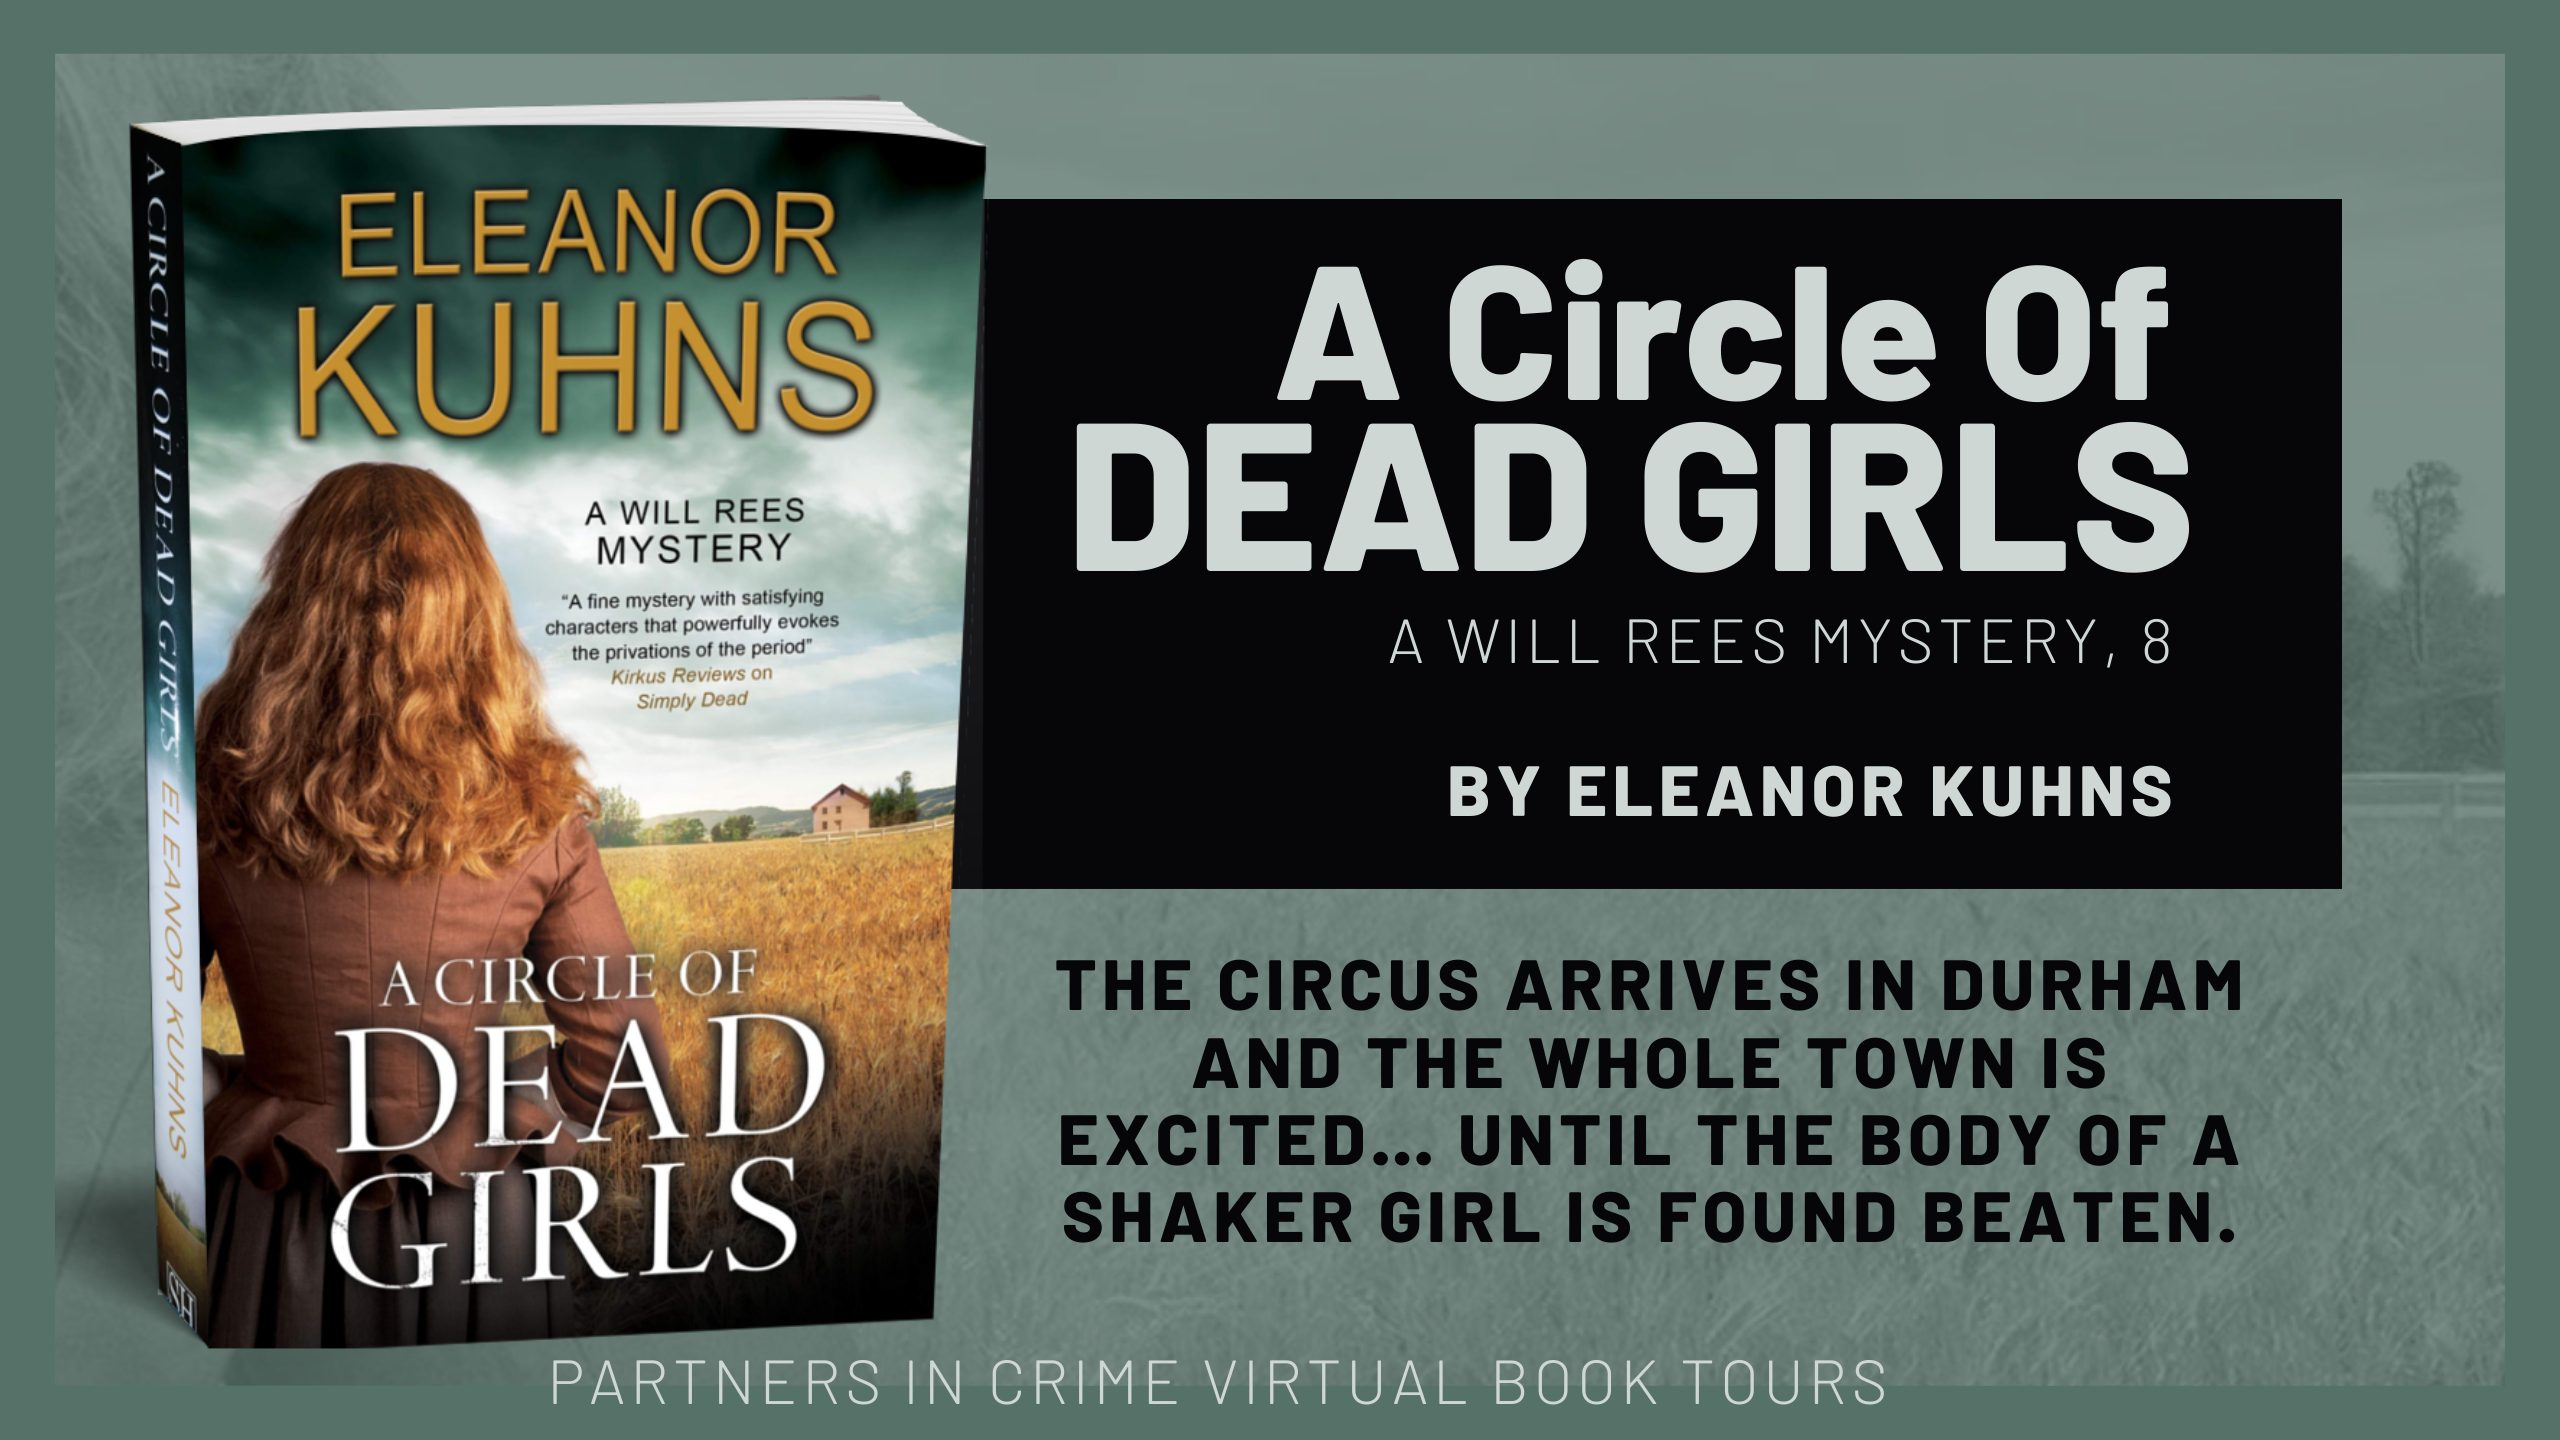 BANNER: A Circle of Dead Girls by Eleanor Kuhns